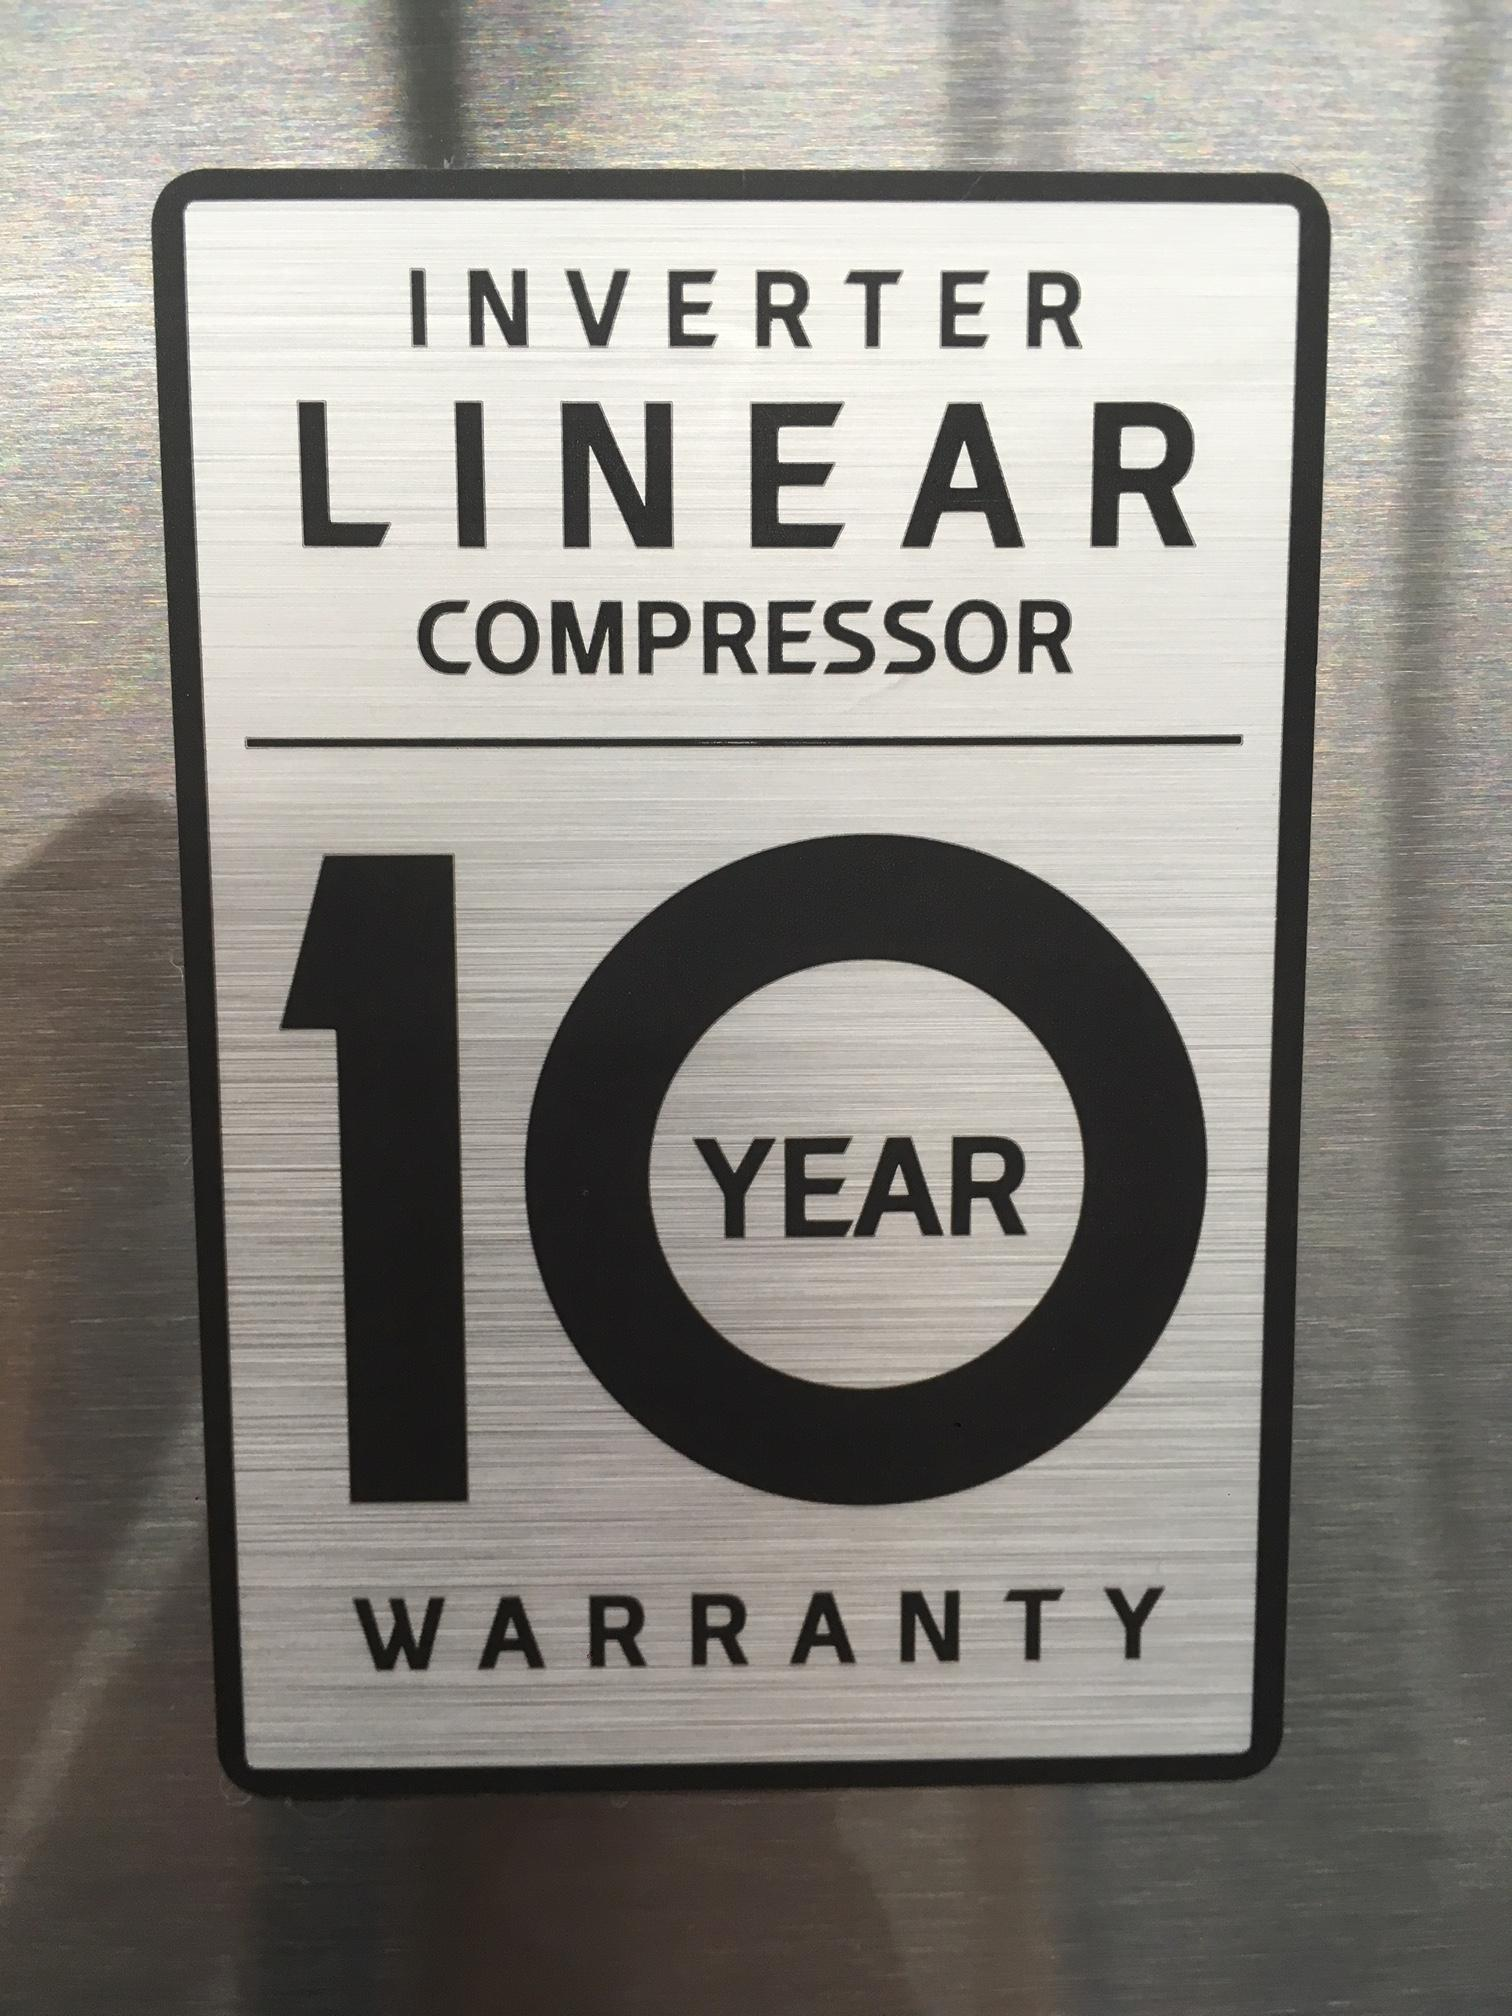 LG Linear Compressor Badge 05.30.18